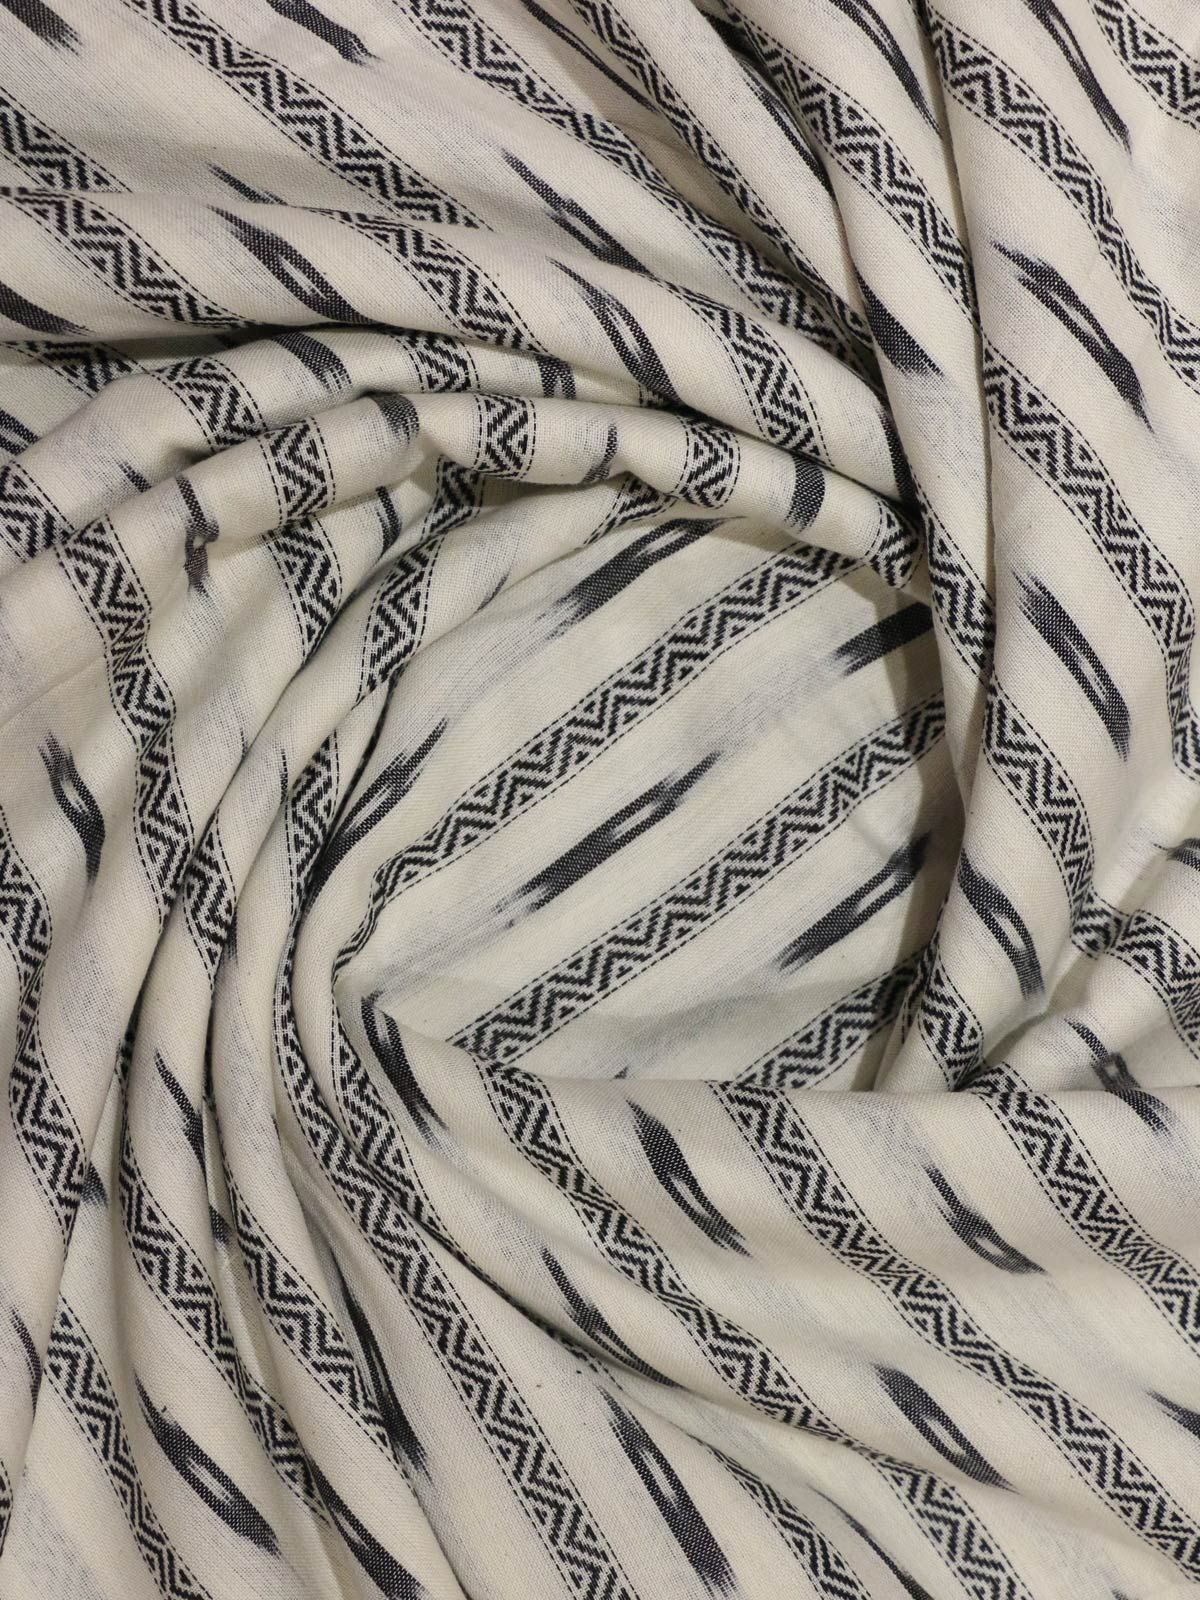 White & Black ikat handloom cotton fabric